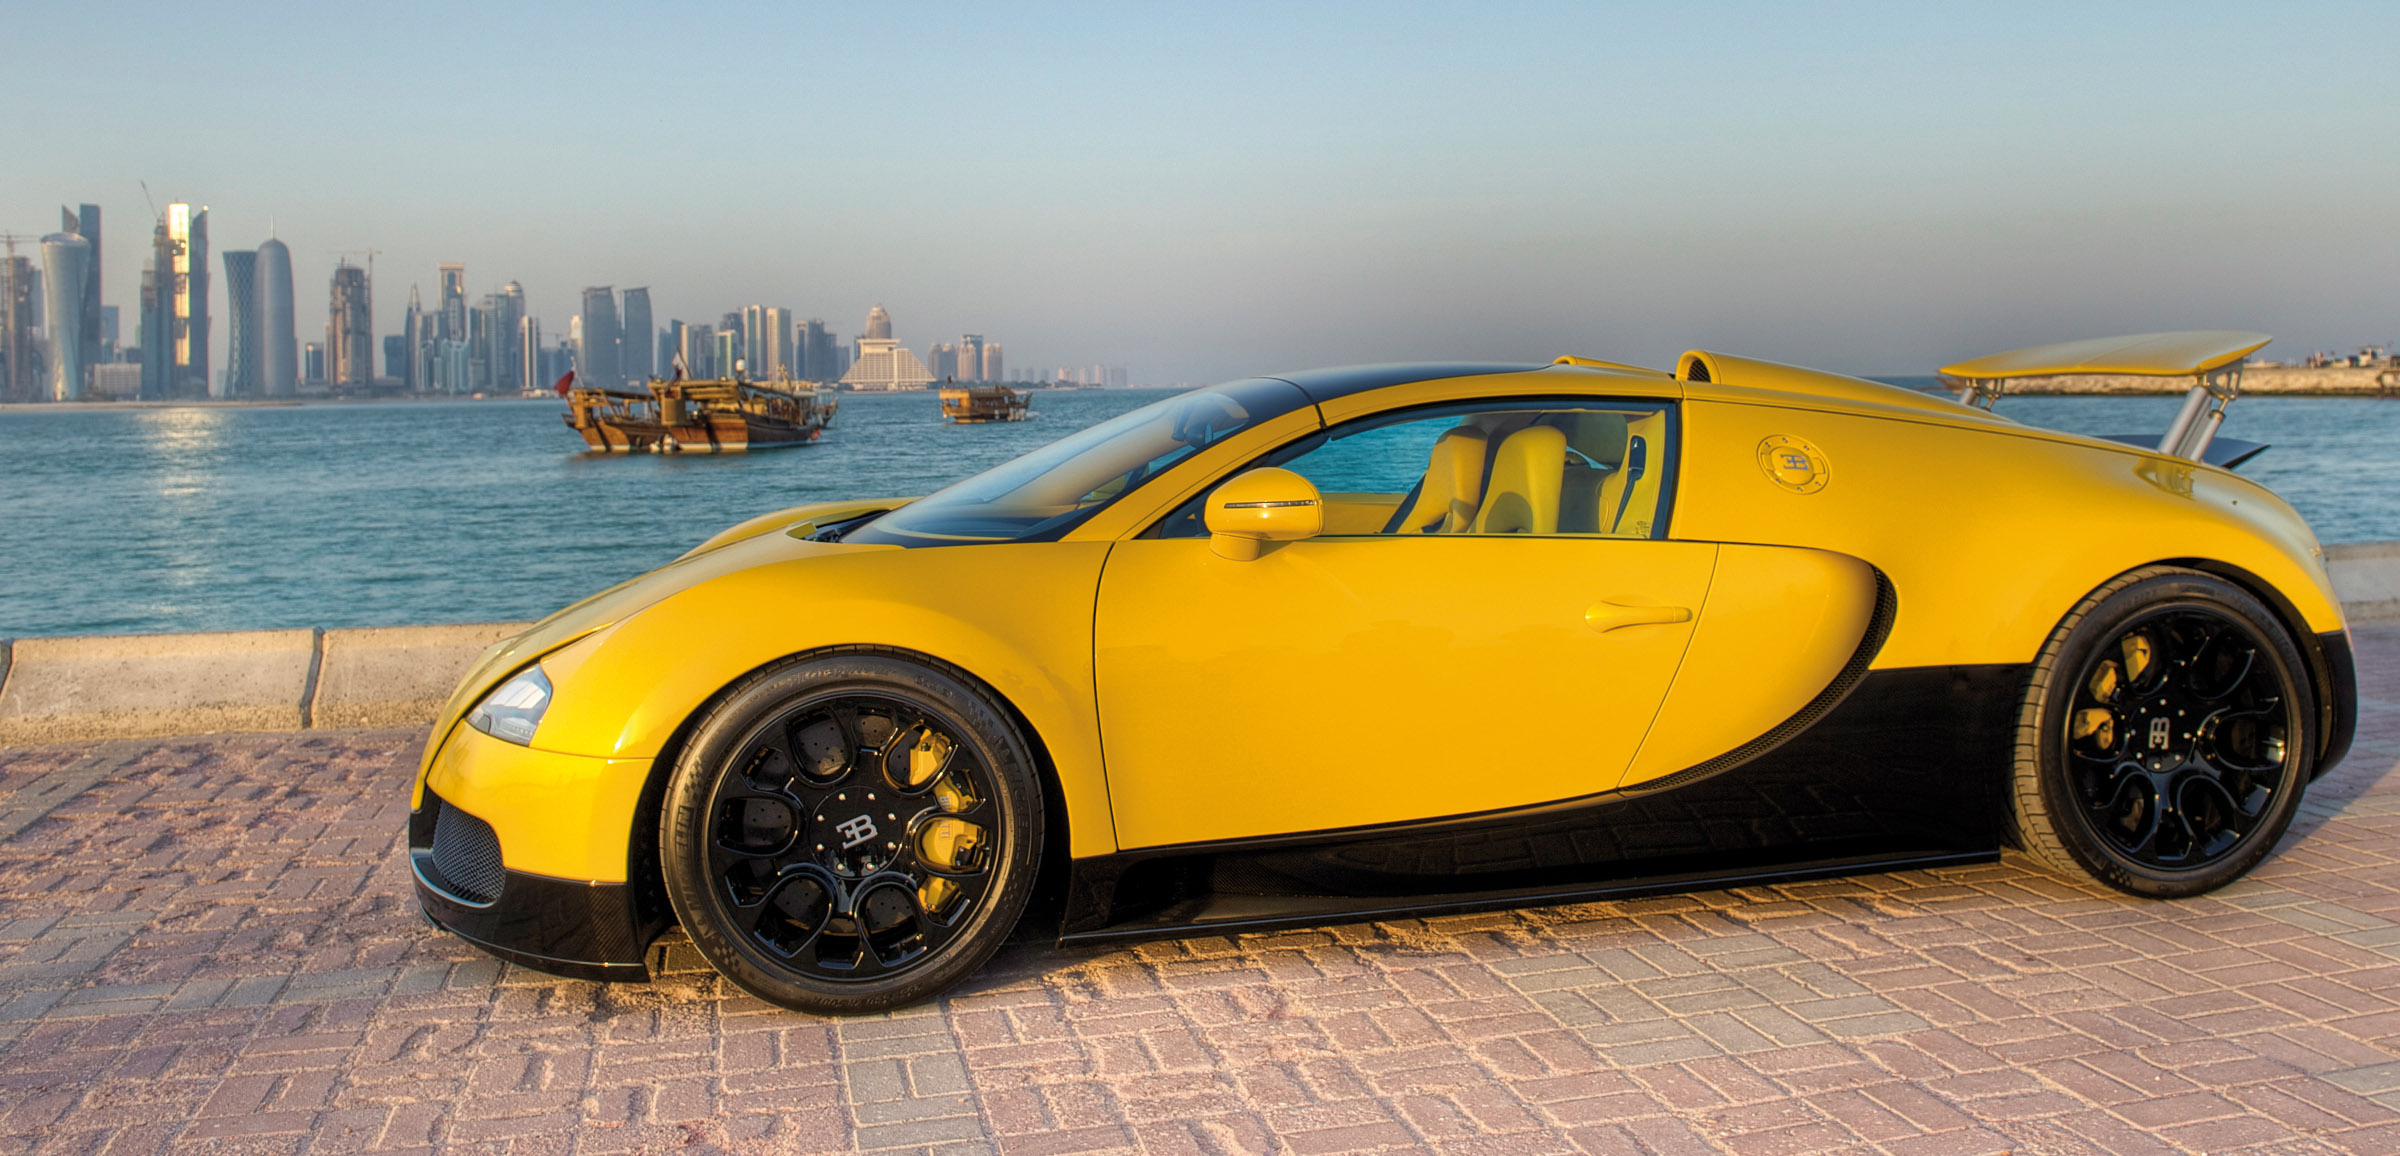 152029 download wallpaper Sports, Bugatti, Cars, 2012, Supercar, Veyron, Qatar, Grand, 16-4 screensavers and pictures for free